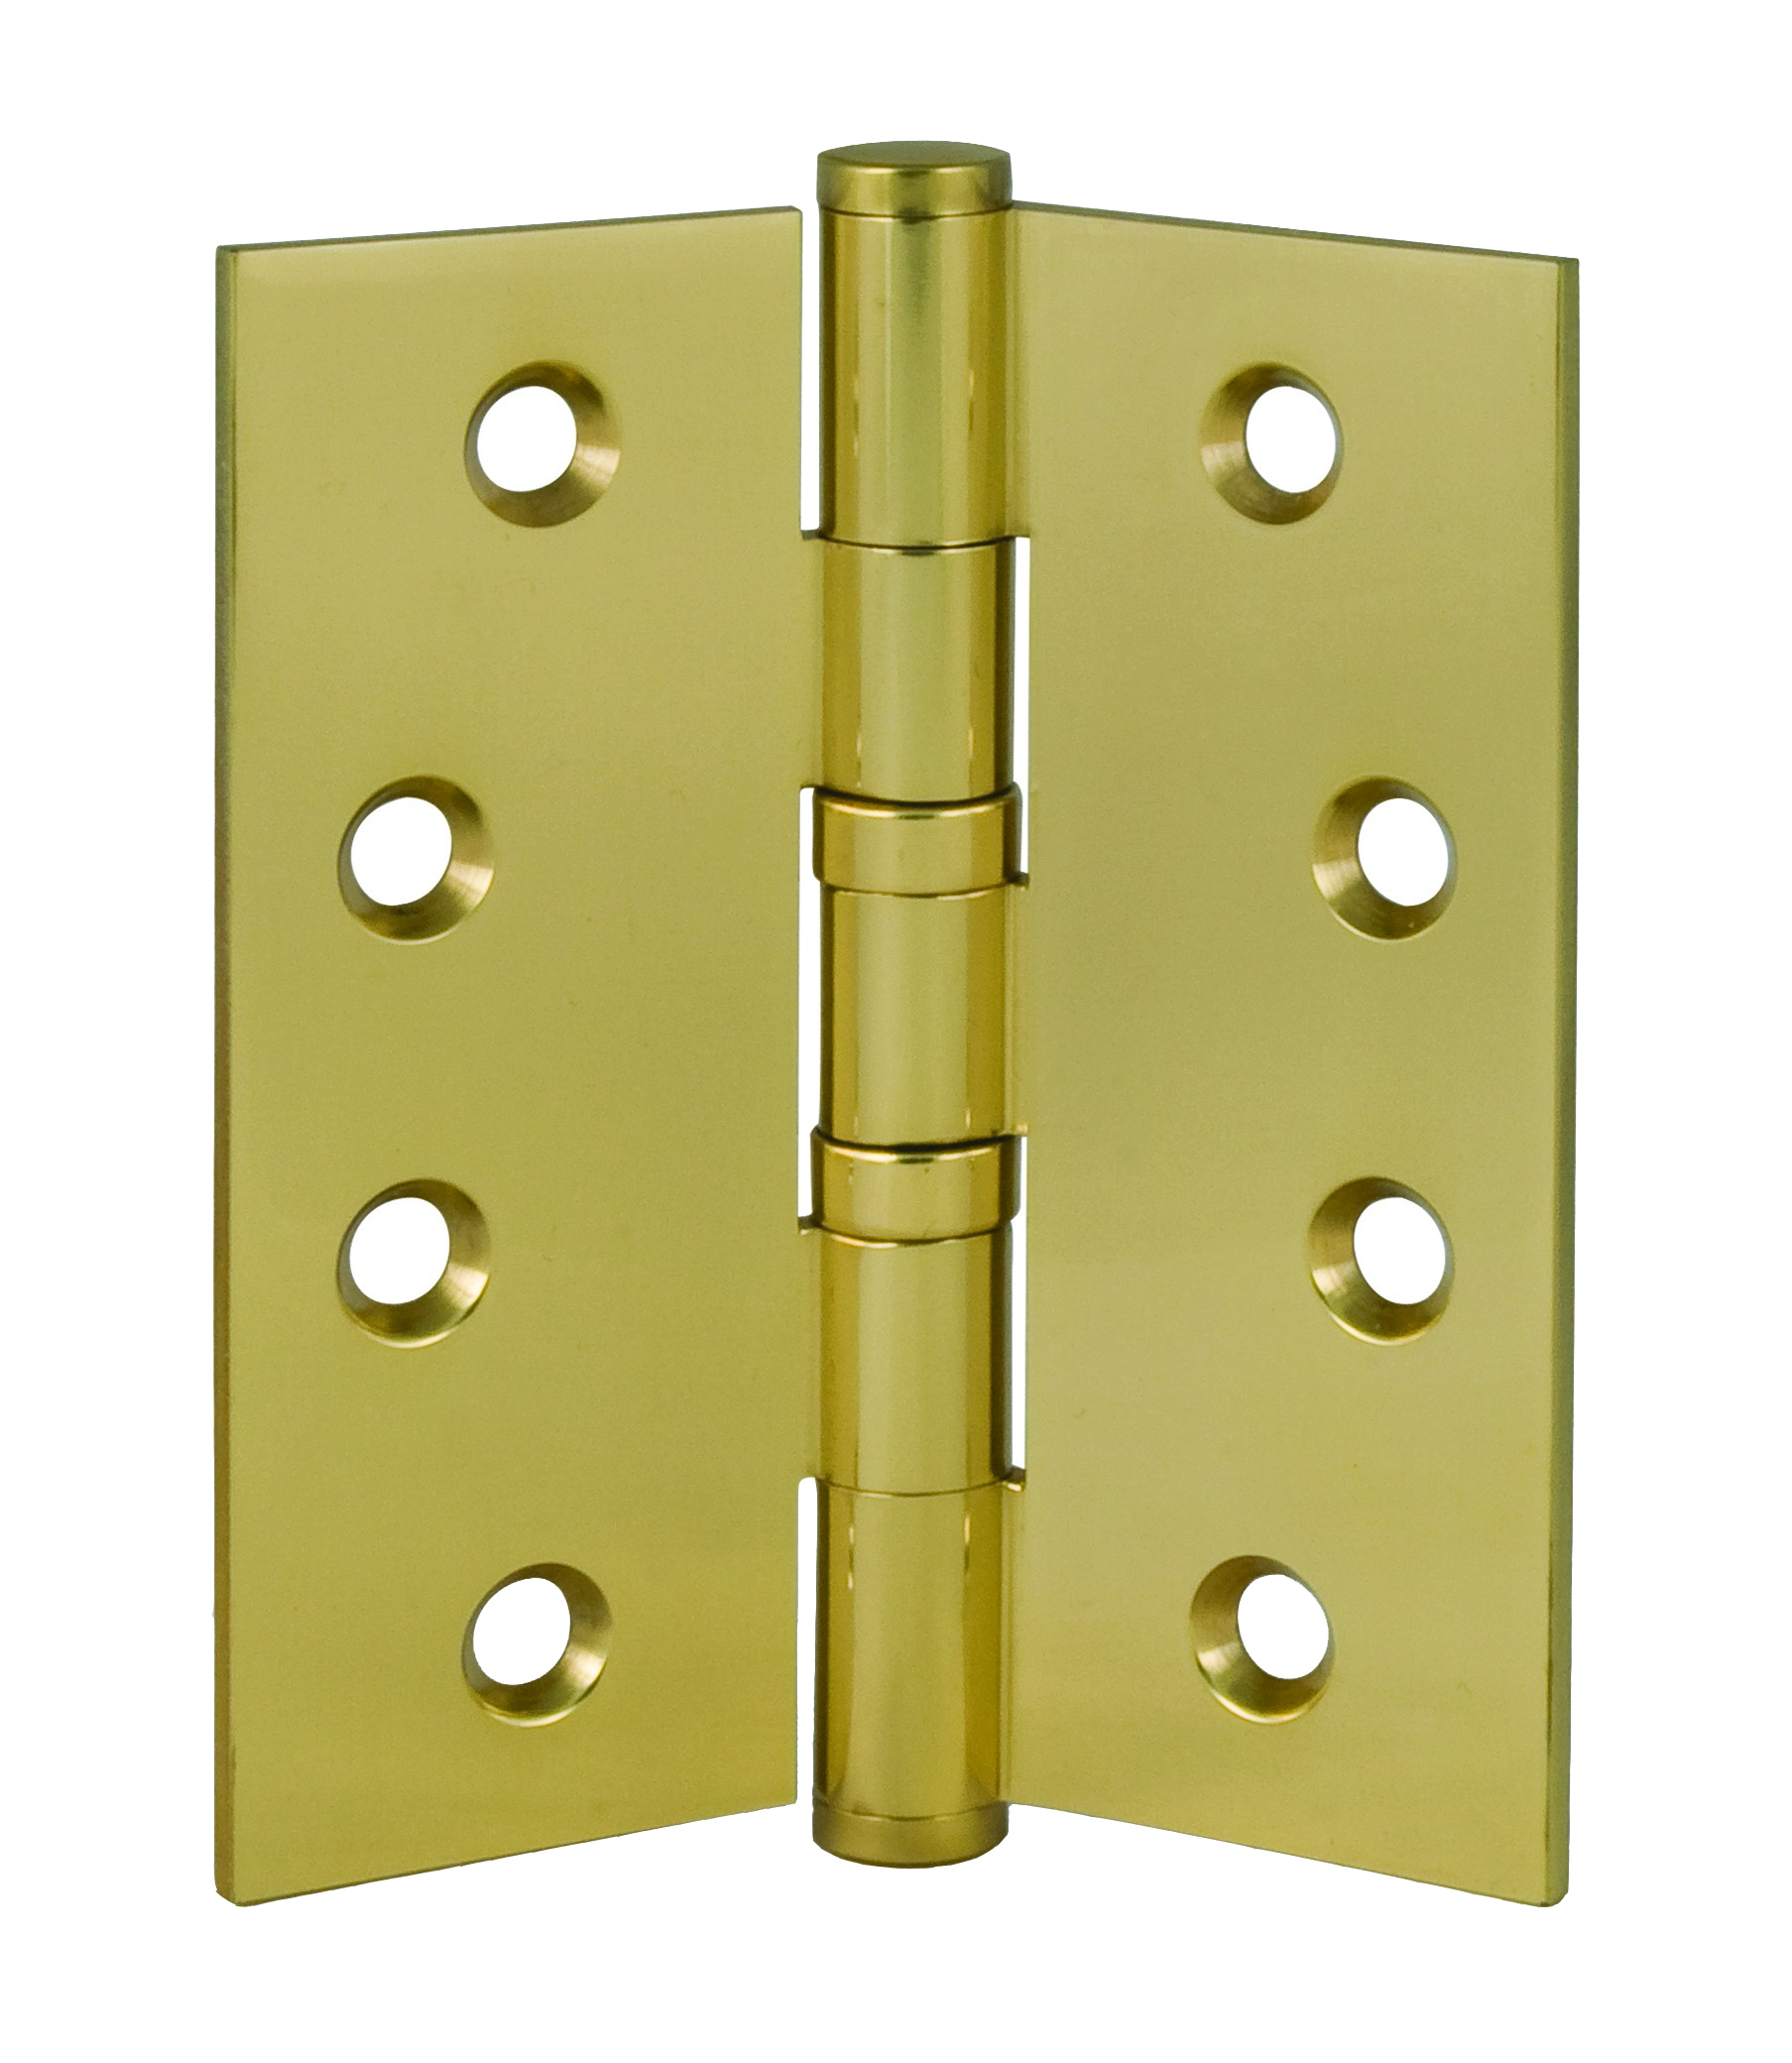 4″ Square Solid Brass Hinge